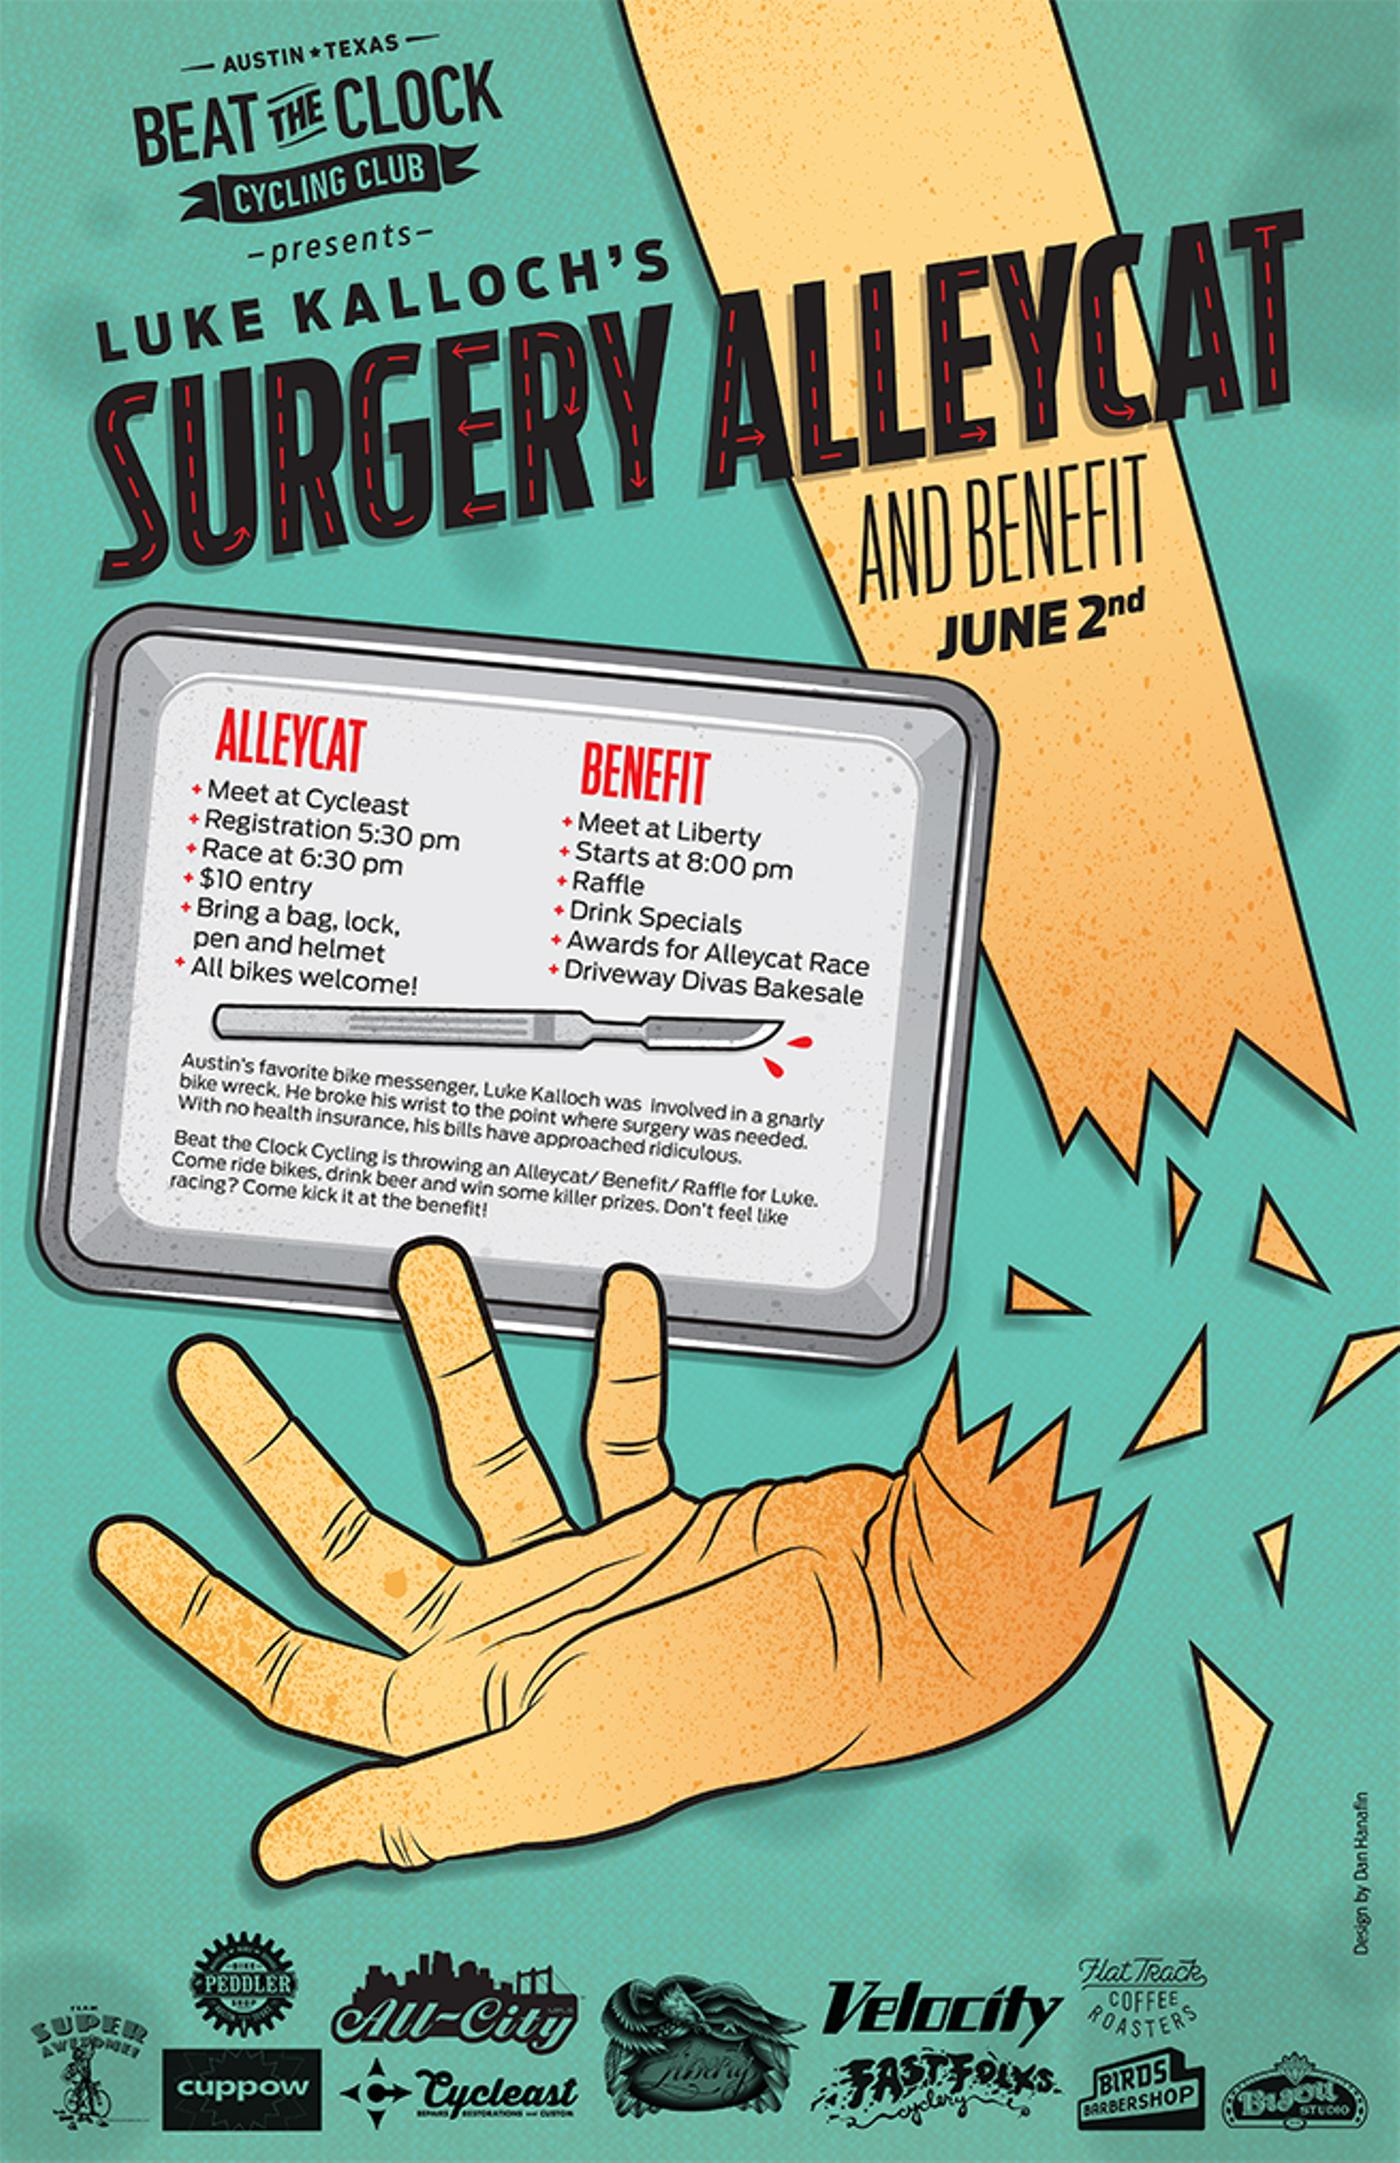 This Weekend in Austin: Luke's Surgery Alleycat